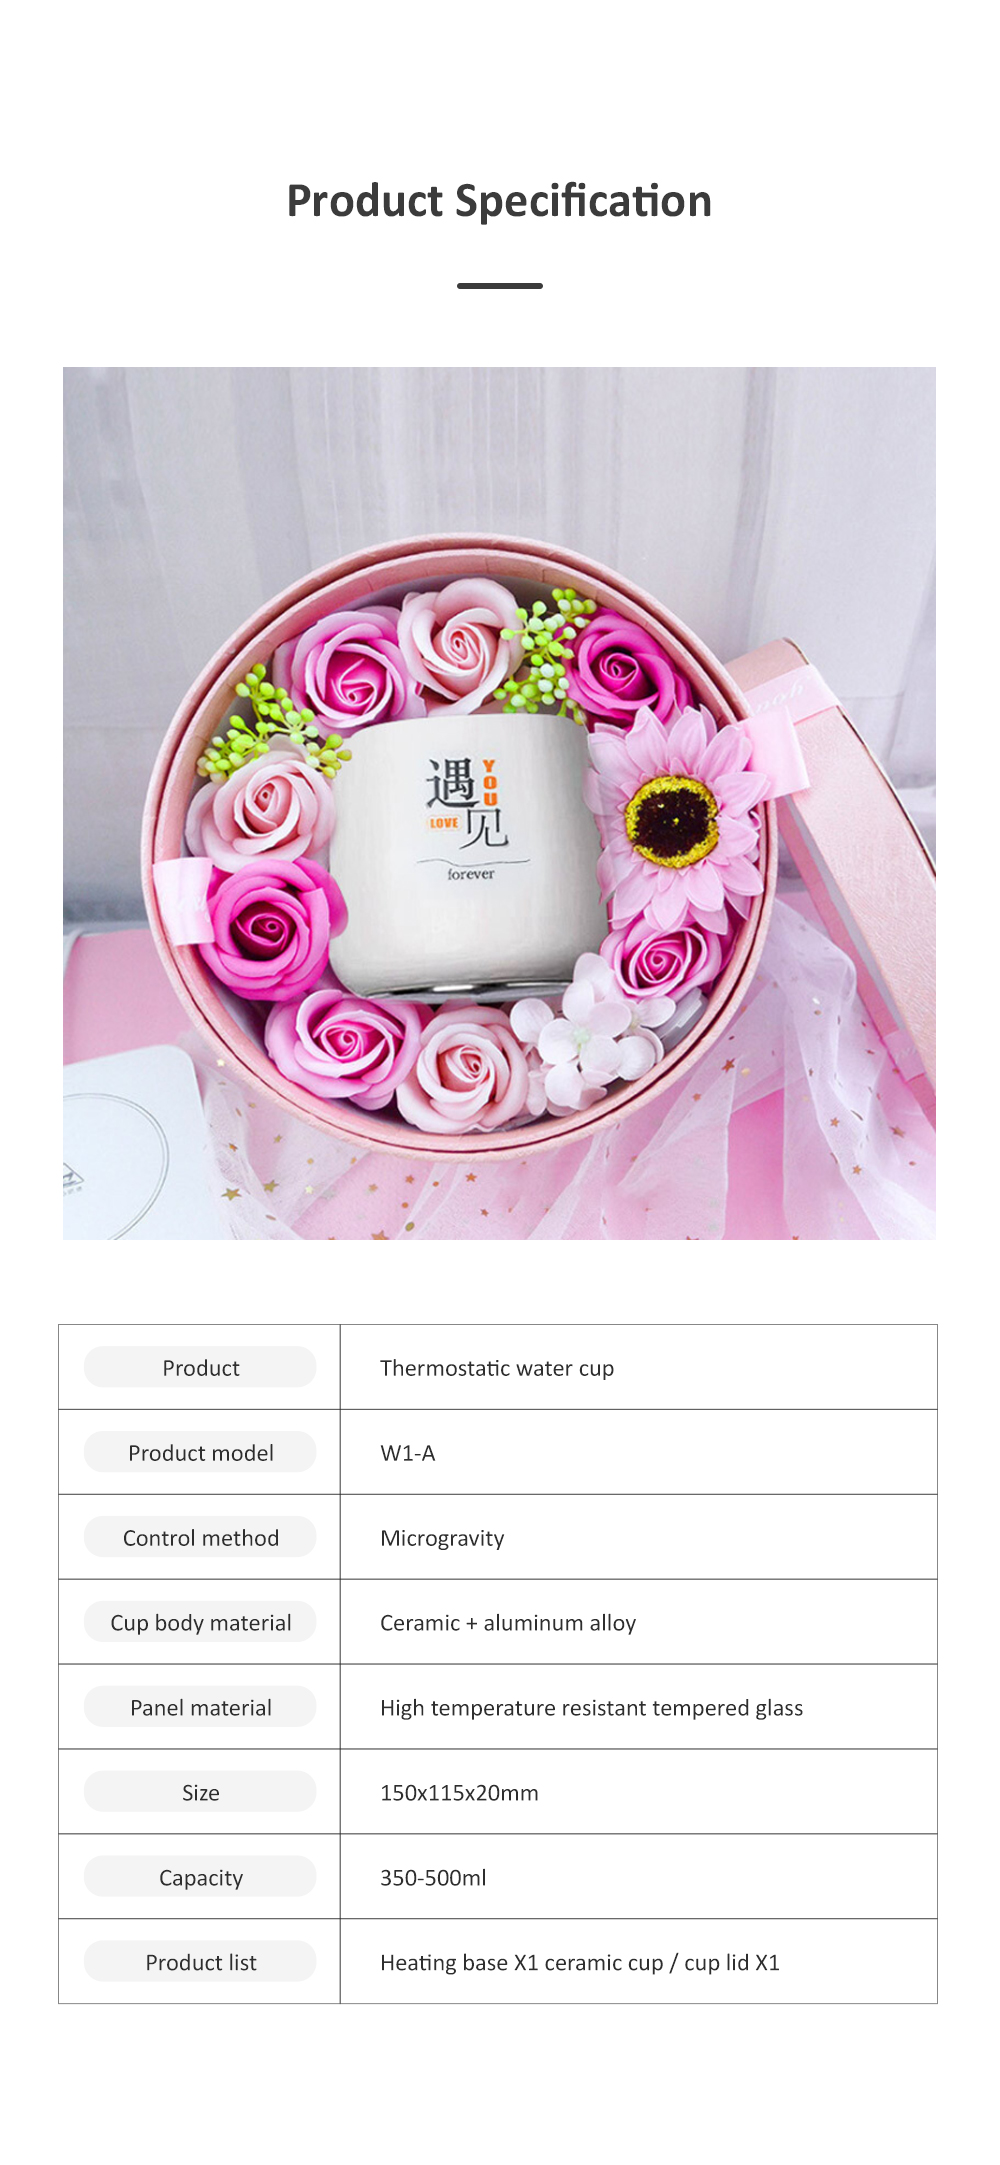 55 Degree Intelligent Thermostat Coaster Smart Insulation Office Heating Mat Warmer Milk Warmer Cup Gift With Delicate Box Valentine Gift 8